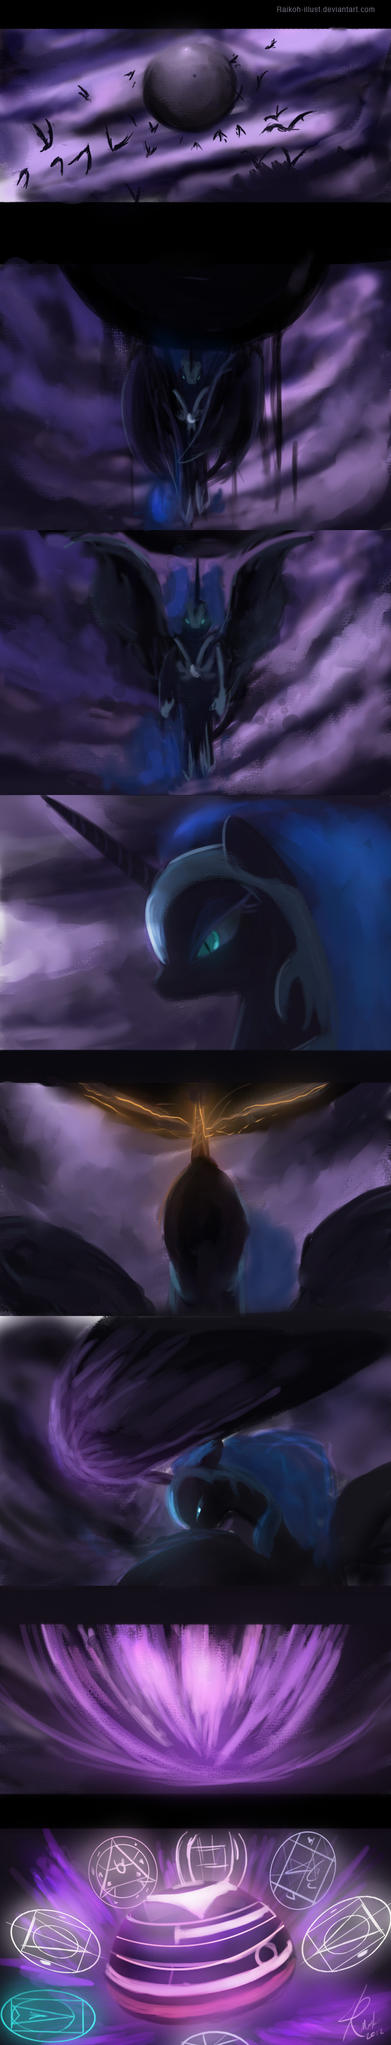 Nightmare Moon - Dark Messenger by Raikoh-illust